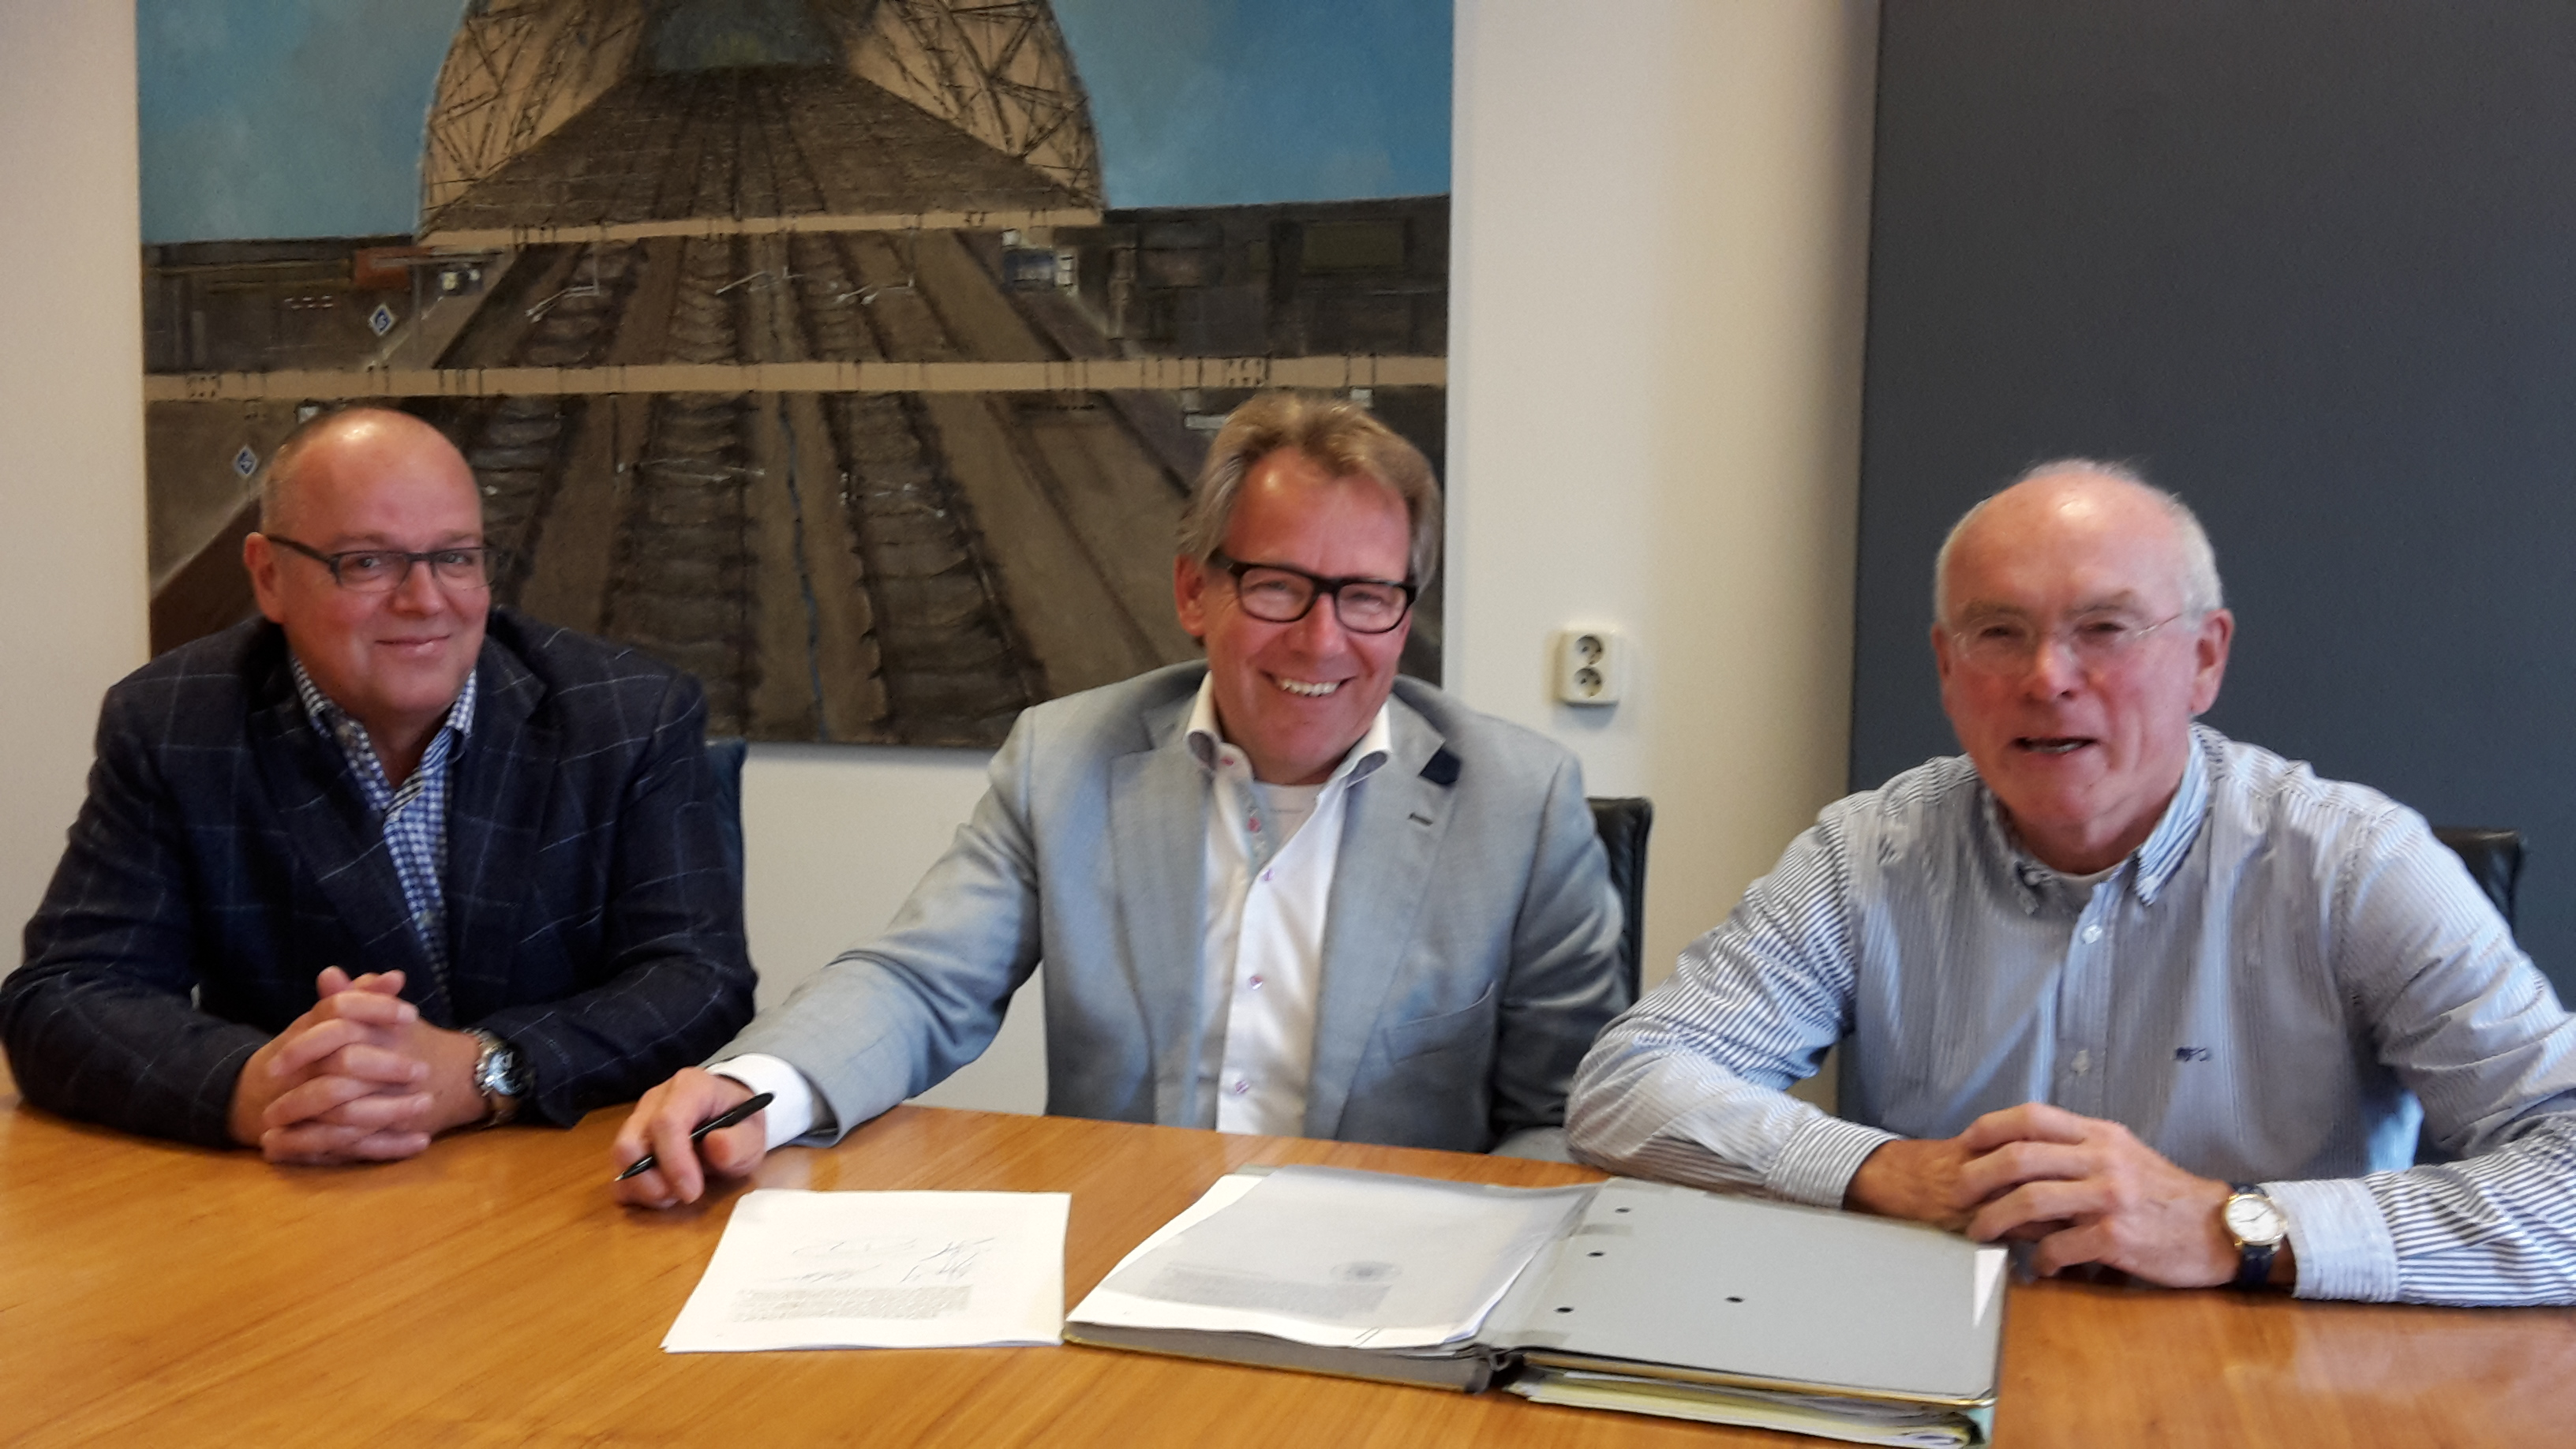 Ondertekening PoweredbyHattem